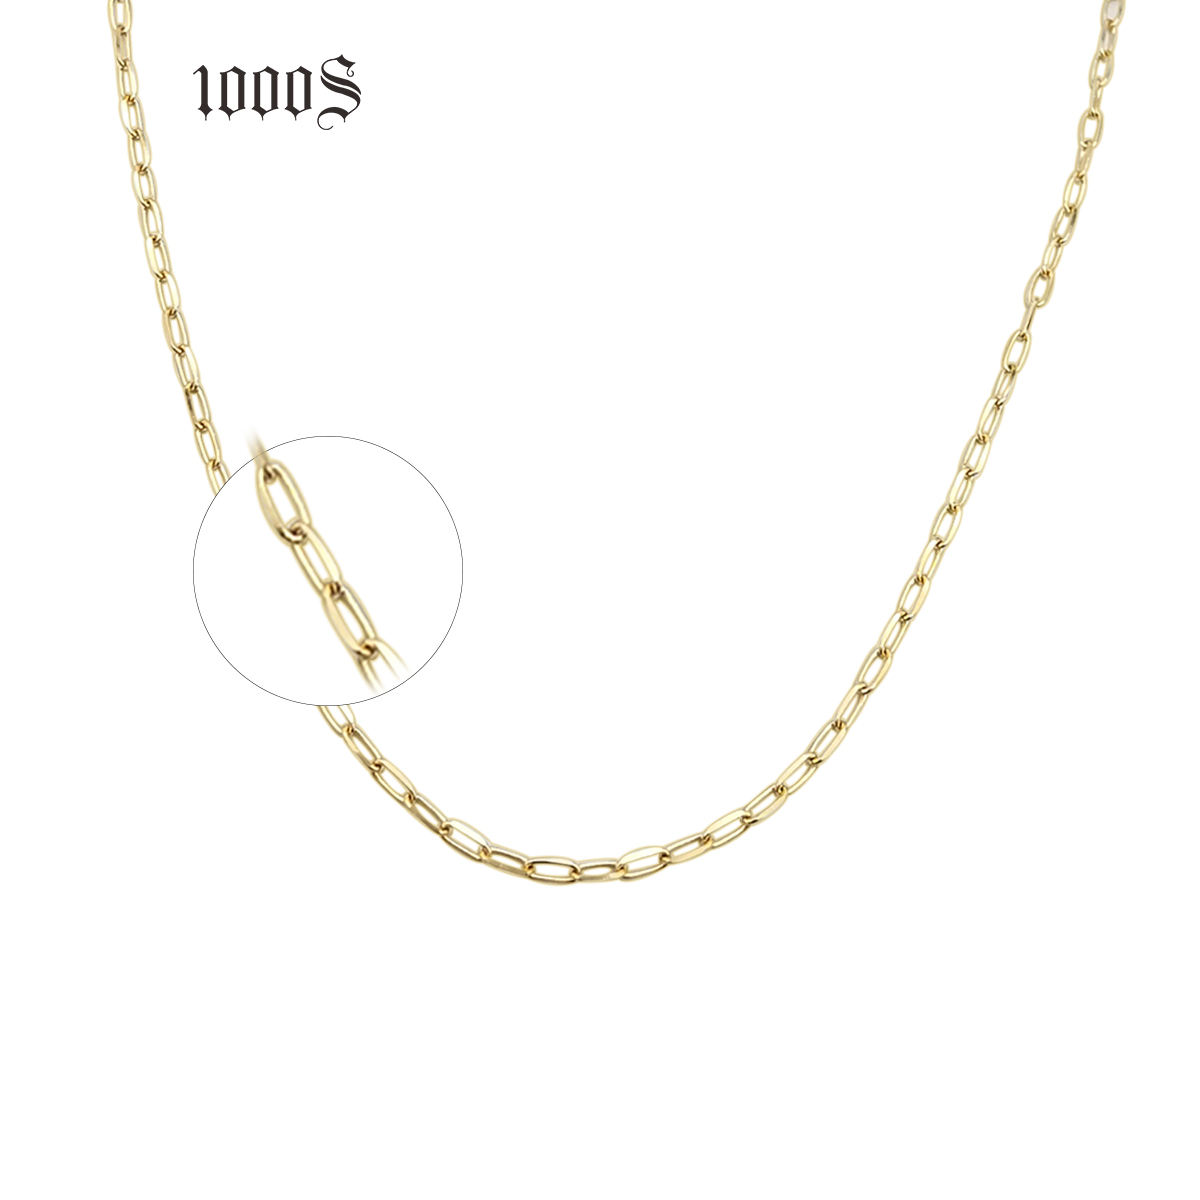 New Arrival 14K 18K Solid Yellow Gold Large Link Chain Paper Clip Gold Chain Necklace Jewelry Adjustable Length